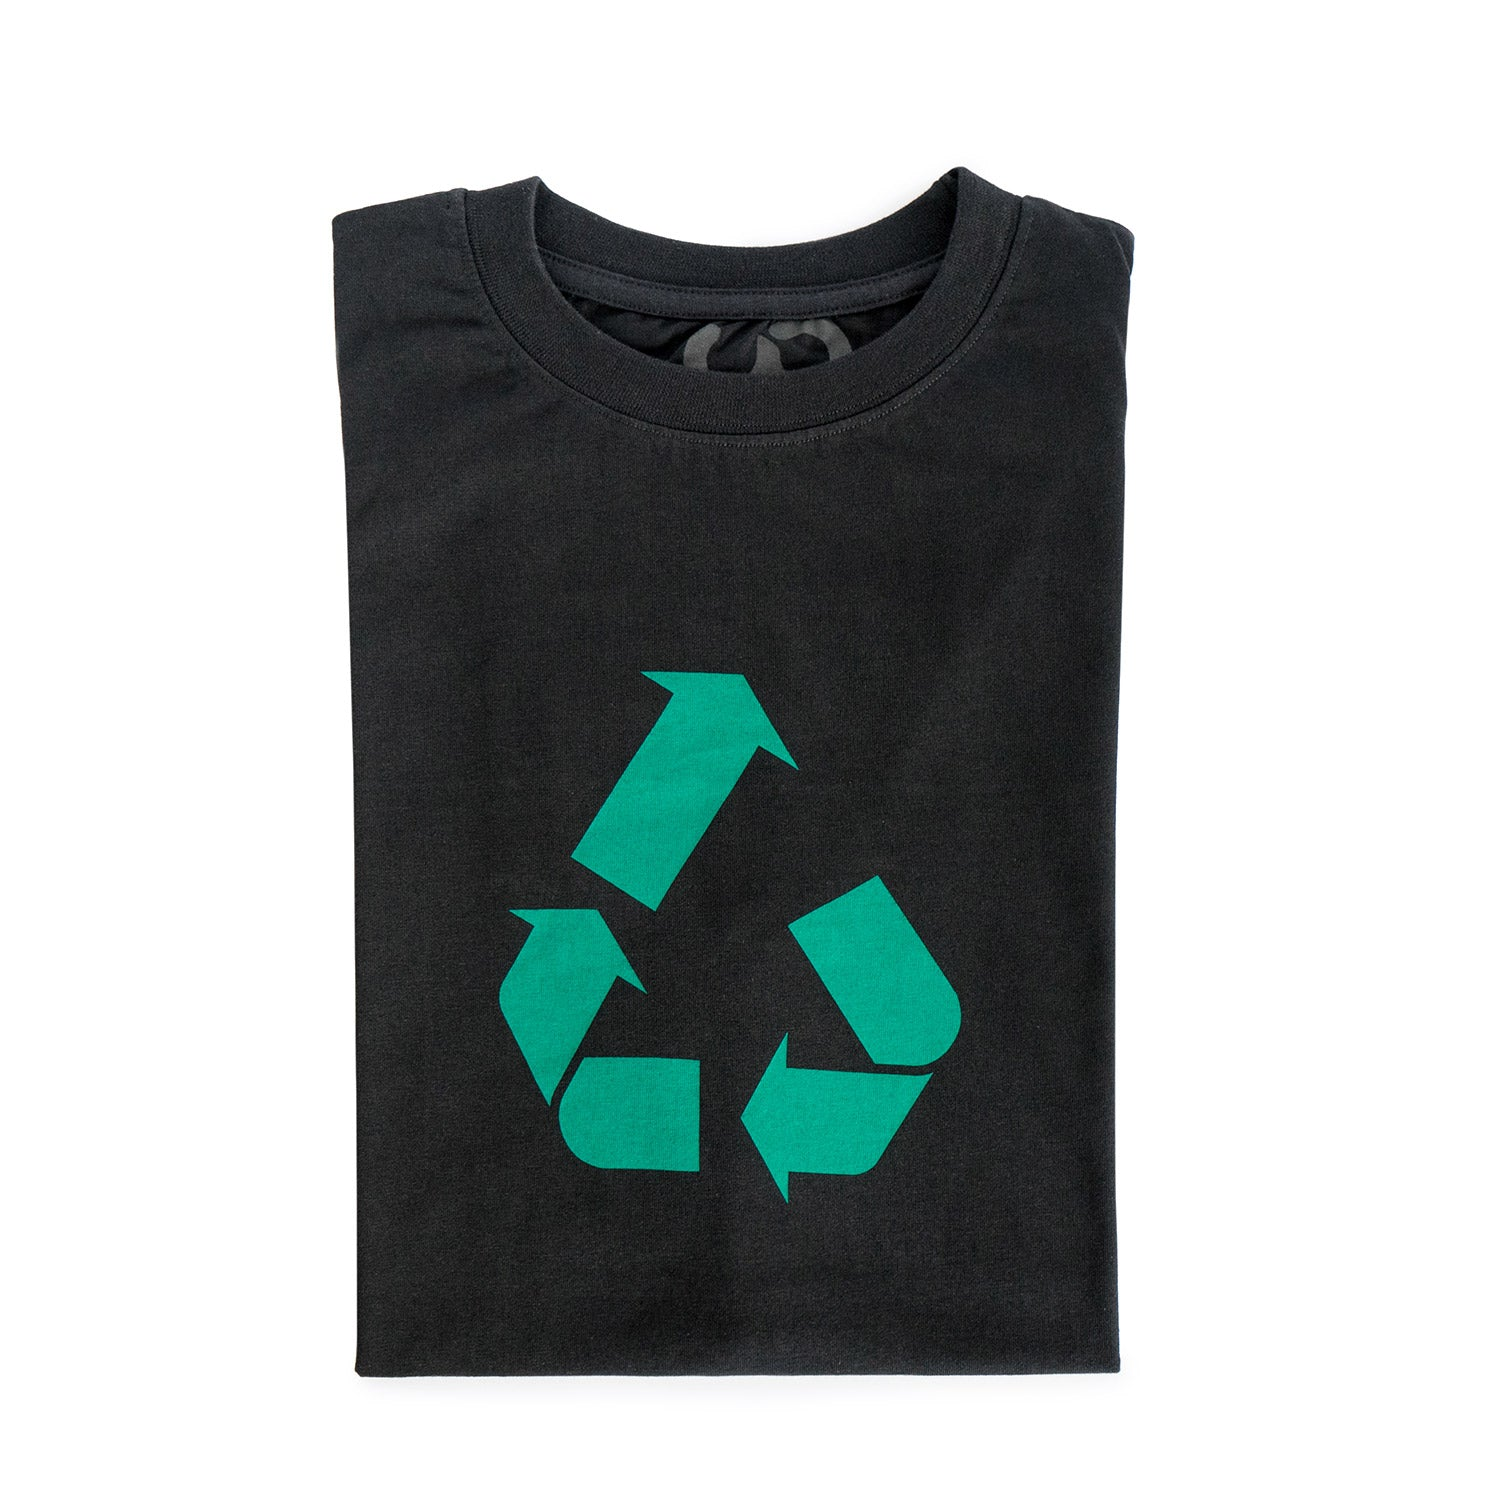 Looptworks upcycled upcycle logo t-shirt